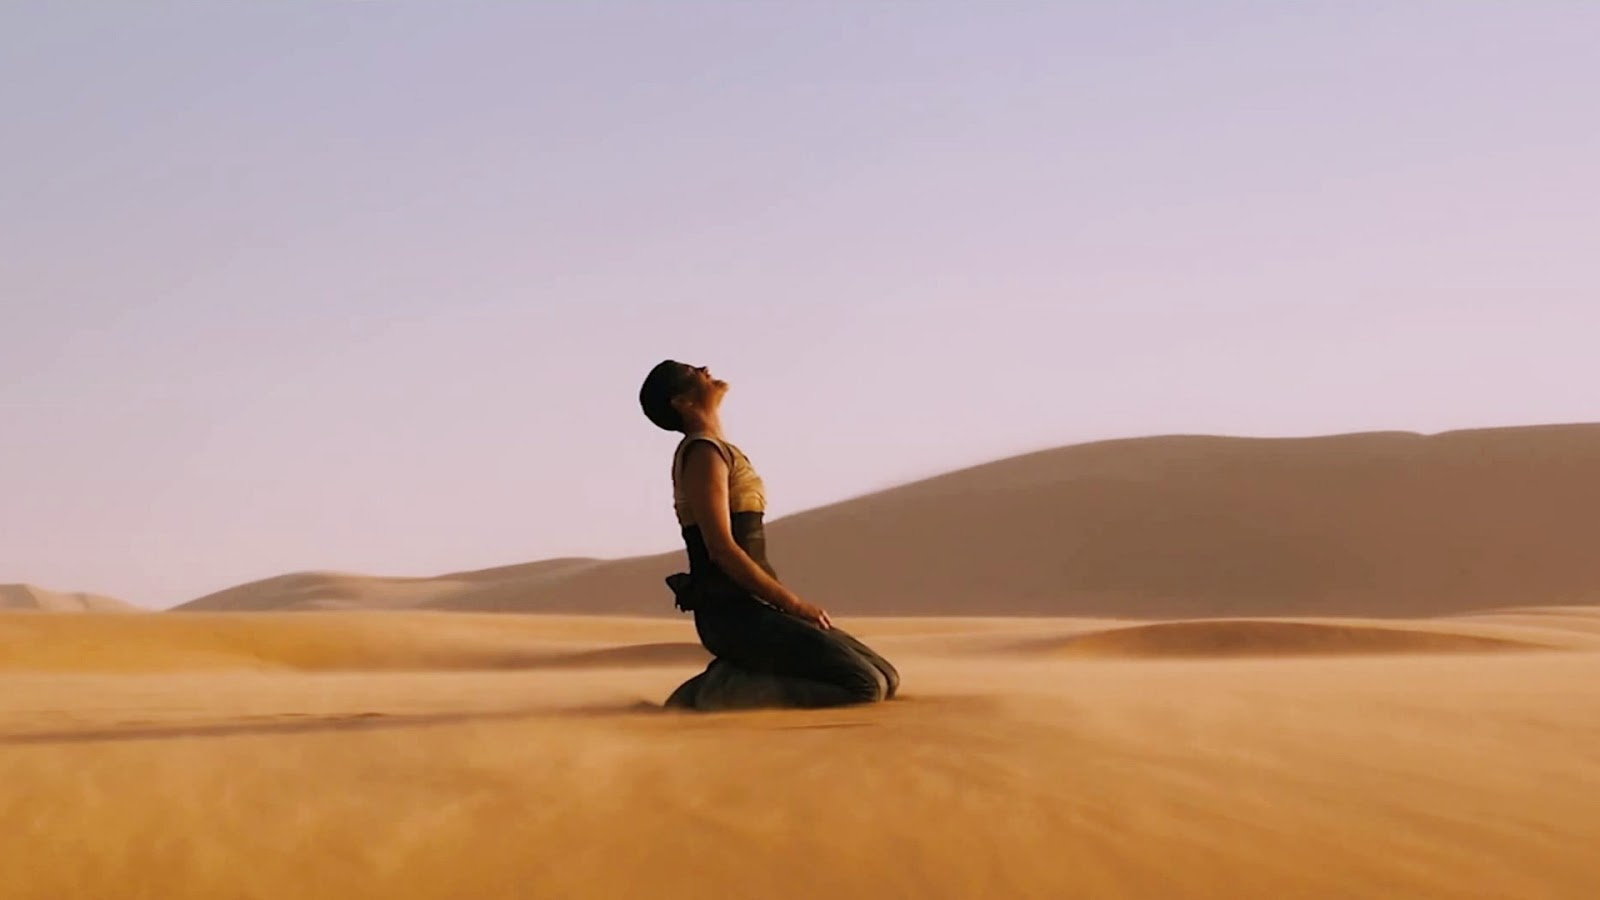 imperator furiosa in mad max fury road